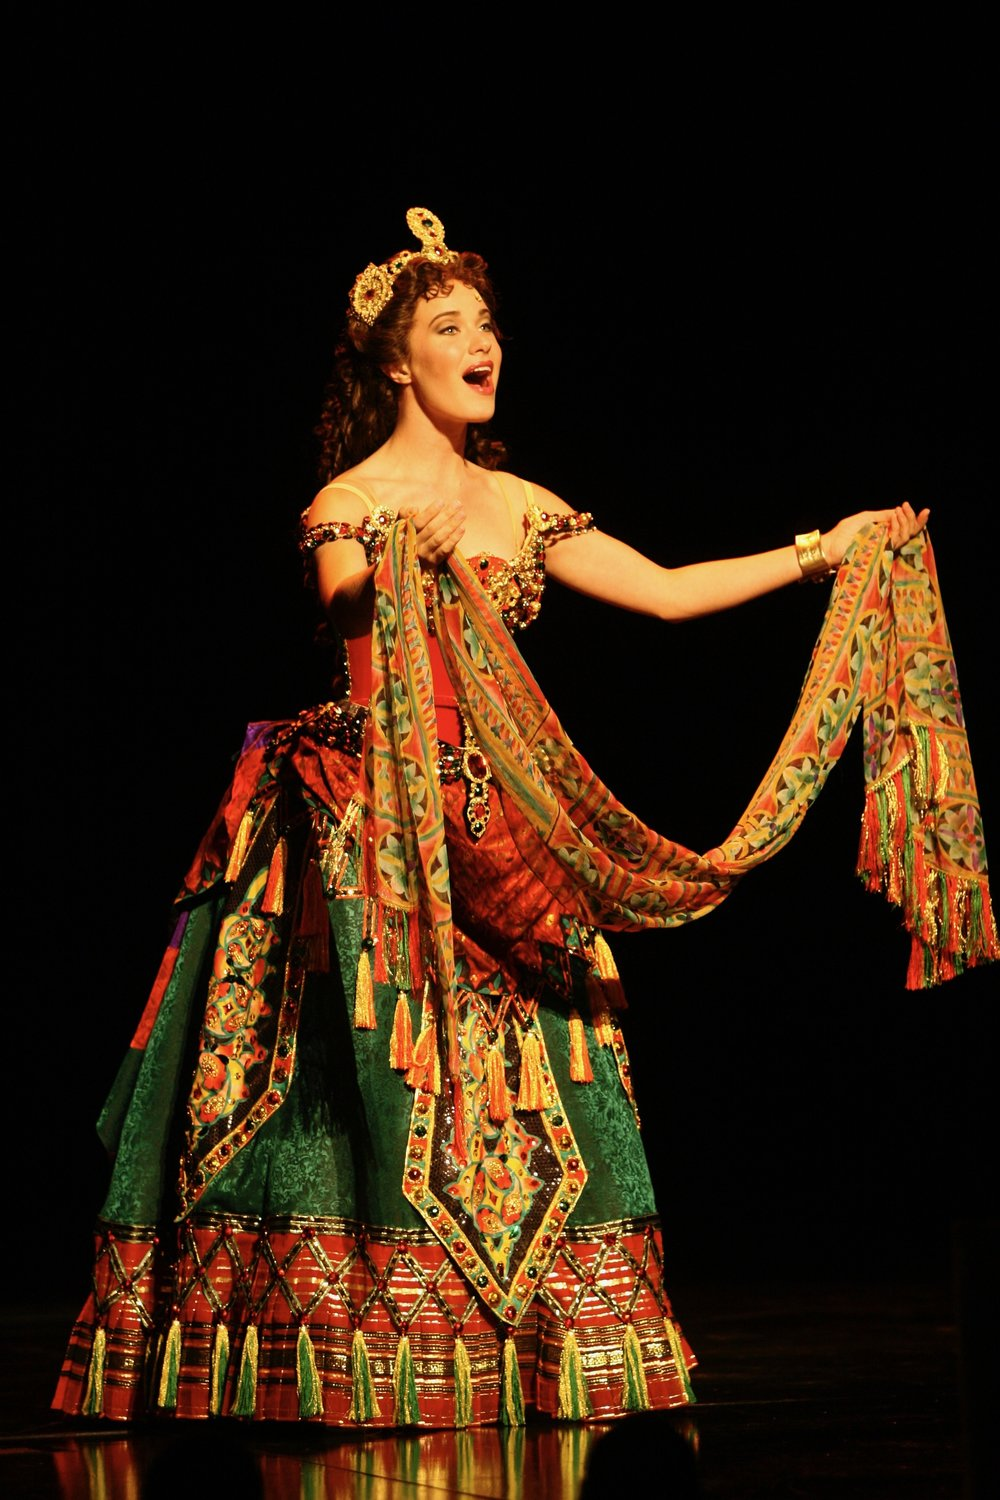 Sierra-Boggess-Phantom Las Vegas 006.jpg